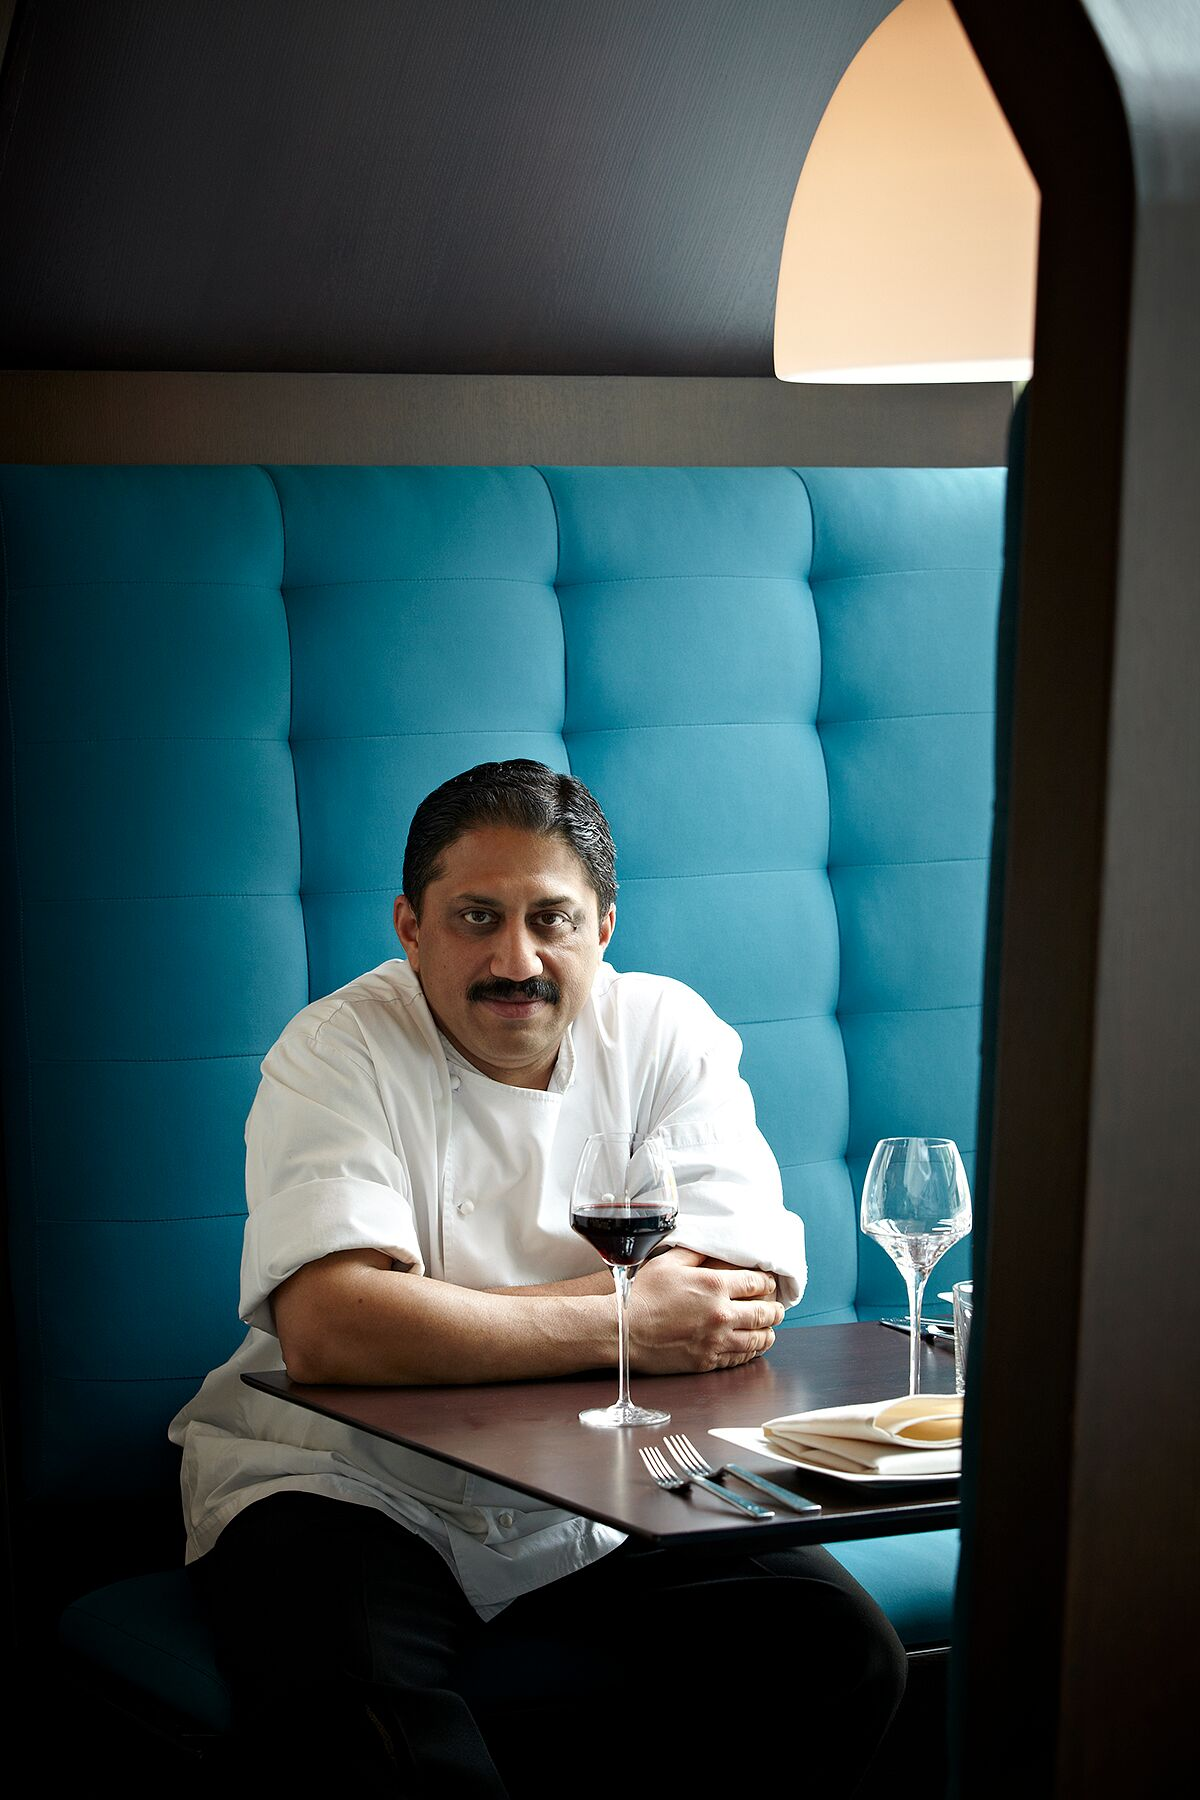 Group Executive Chef (Rasika), Vikram Sunderam